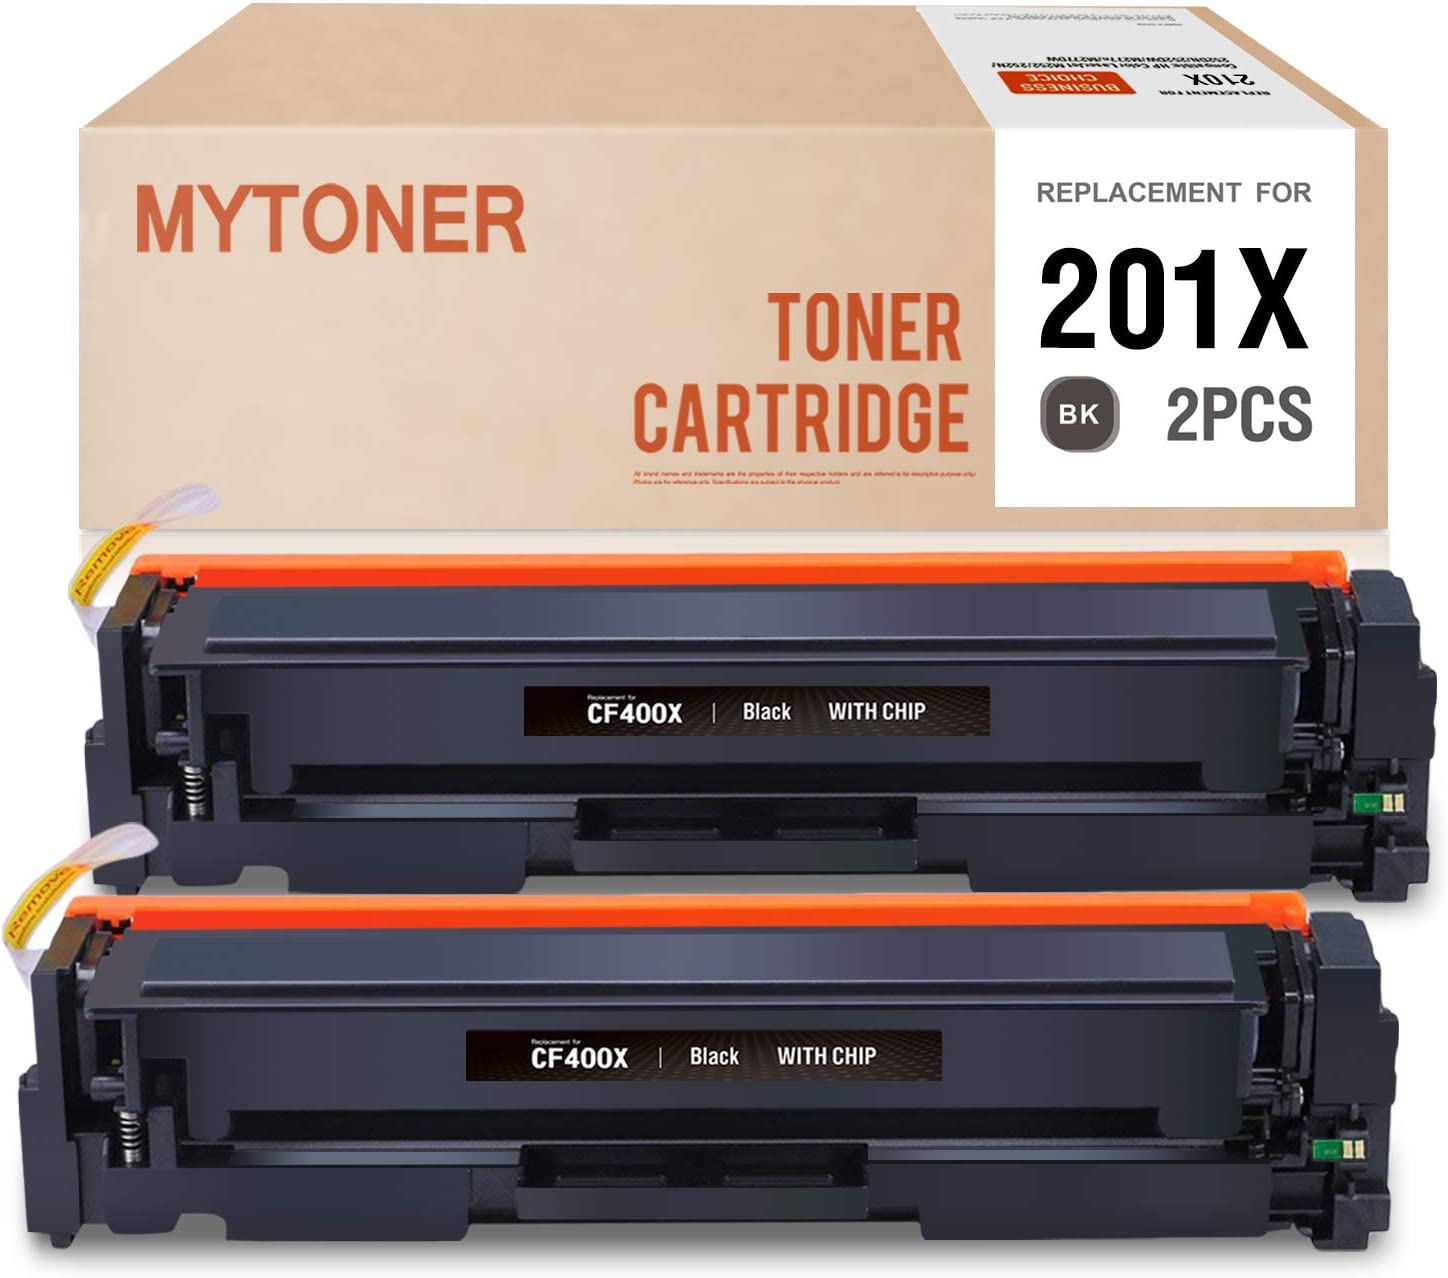 MYTONER Compatible Toner Cartridge Replacement for HP 201X CF400X for HP Color Laserjet Pro MFP M277dw M277n M277c6 M277 M252dw M252n M252 201A Printer High Yield Ink (Black, 2-Pack)